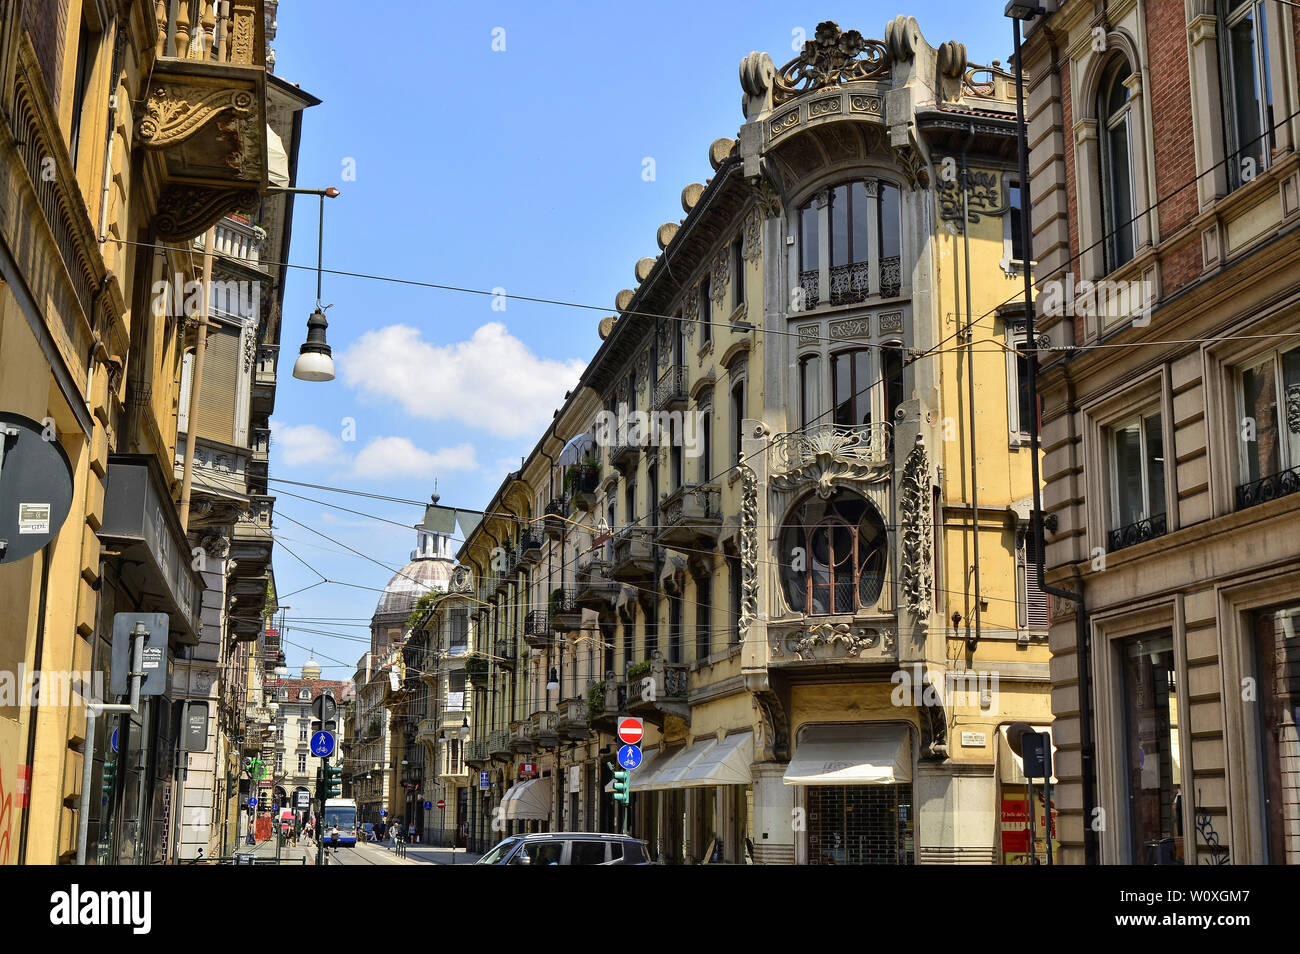 Turin, Piedmont, Italy. June 2018. Casa Florio Nizza, created by engineer Giuseppe Velati Bellini, is one of the interpretations of the liberty or art - Stock Image